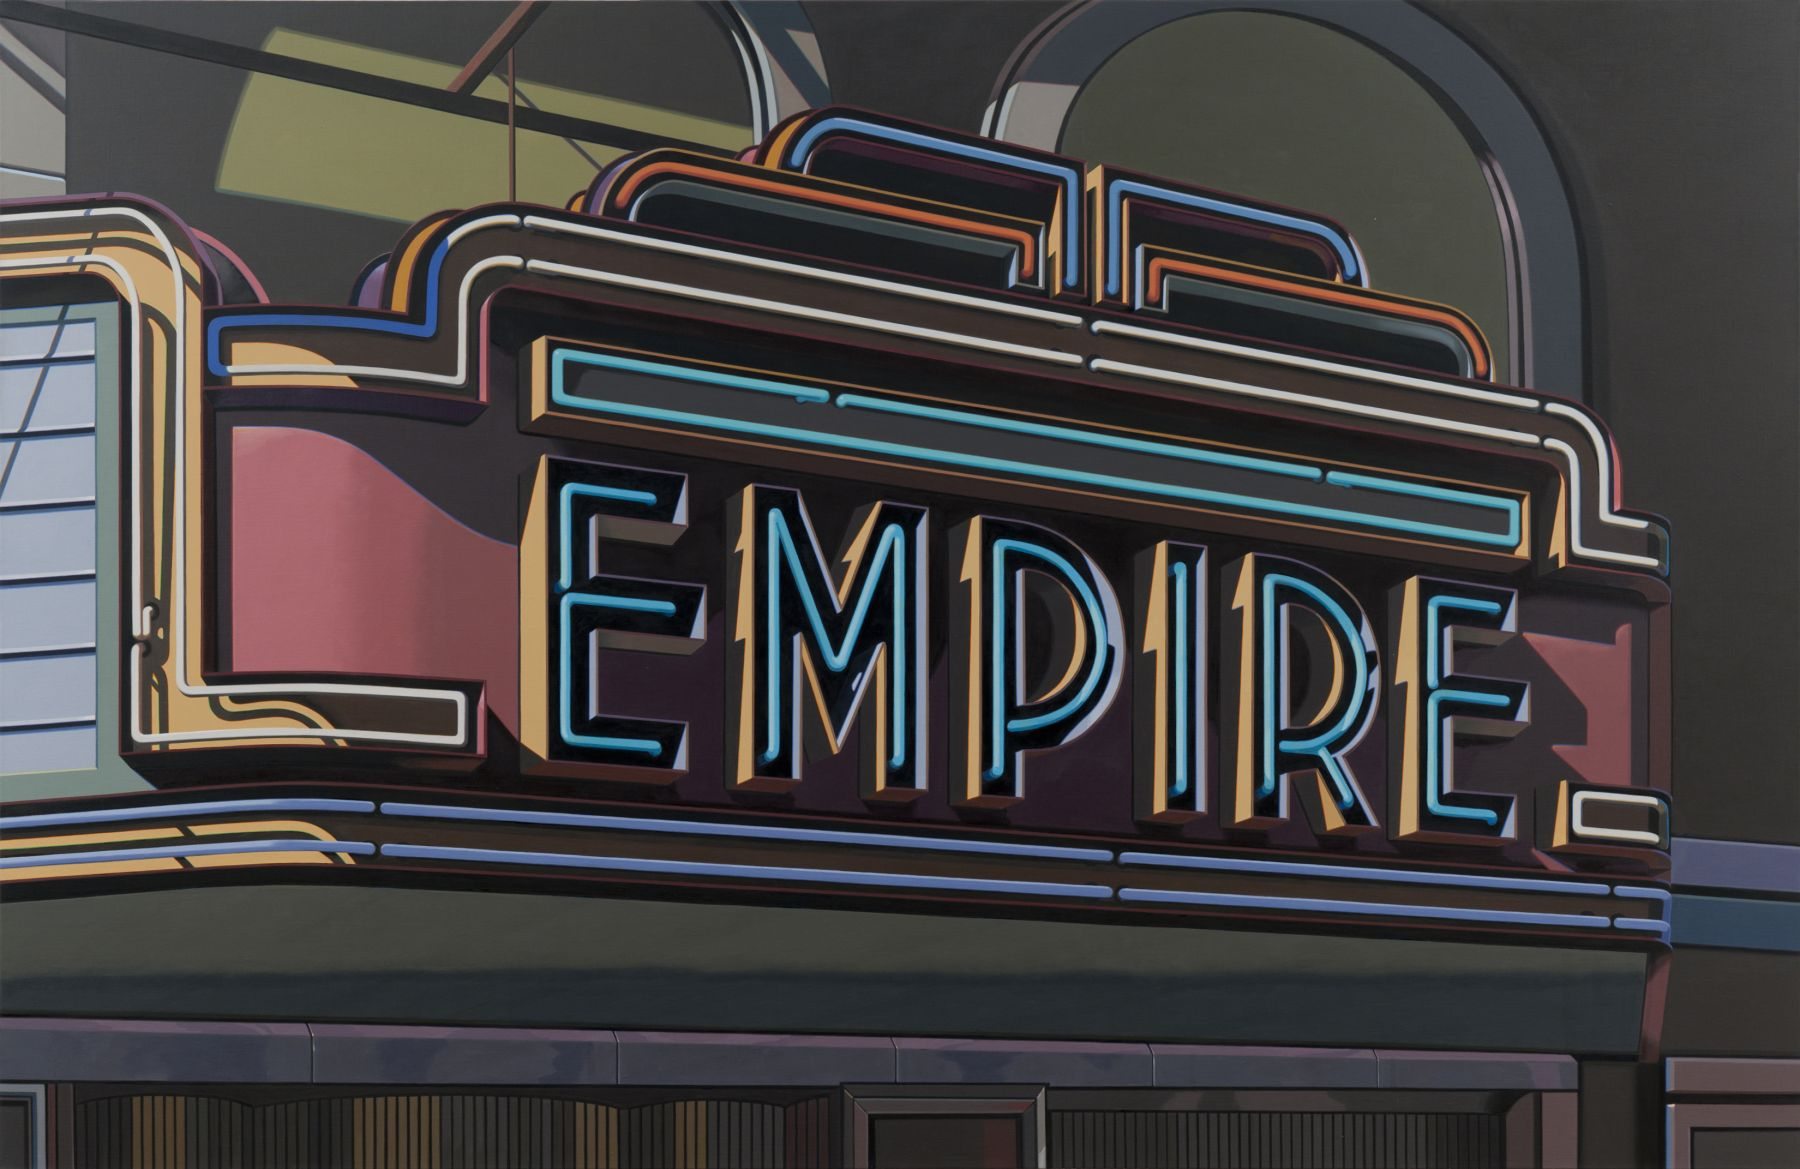 robert cottingham, Empire (SOLD), 2009, oil on canvas, 70 x 108 inches